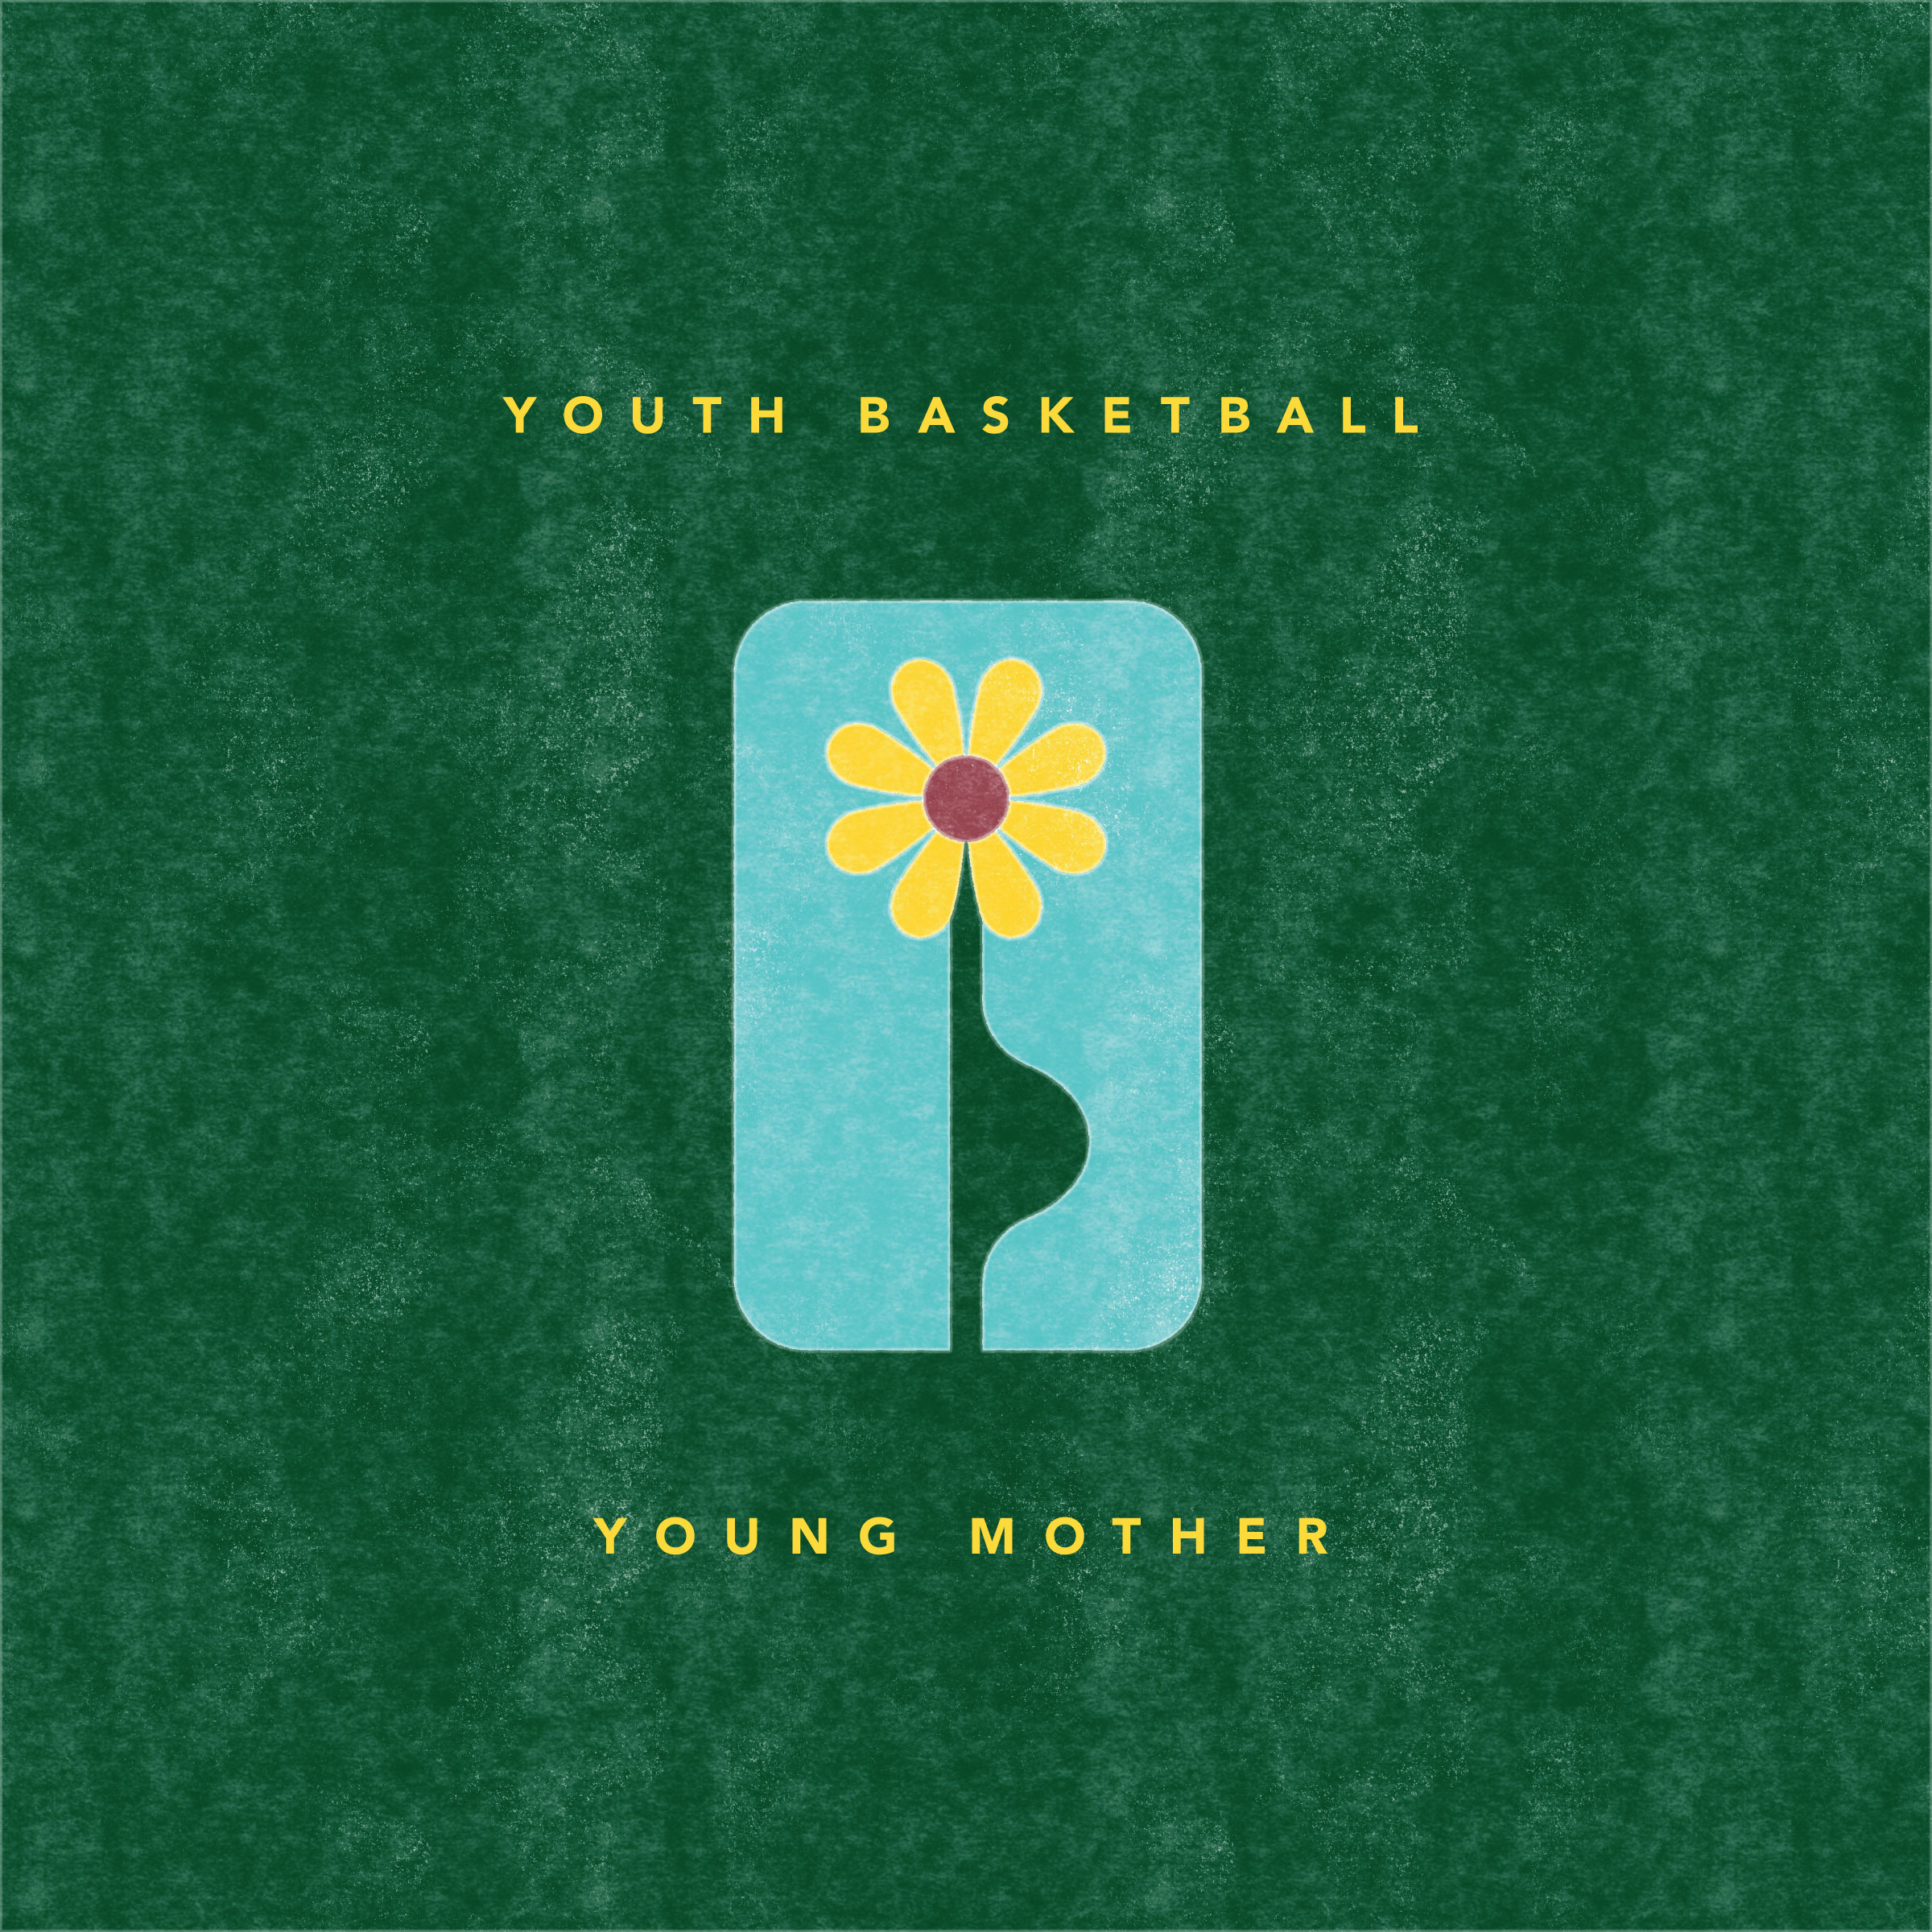 youngMother_artwork.jpg